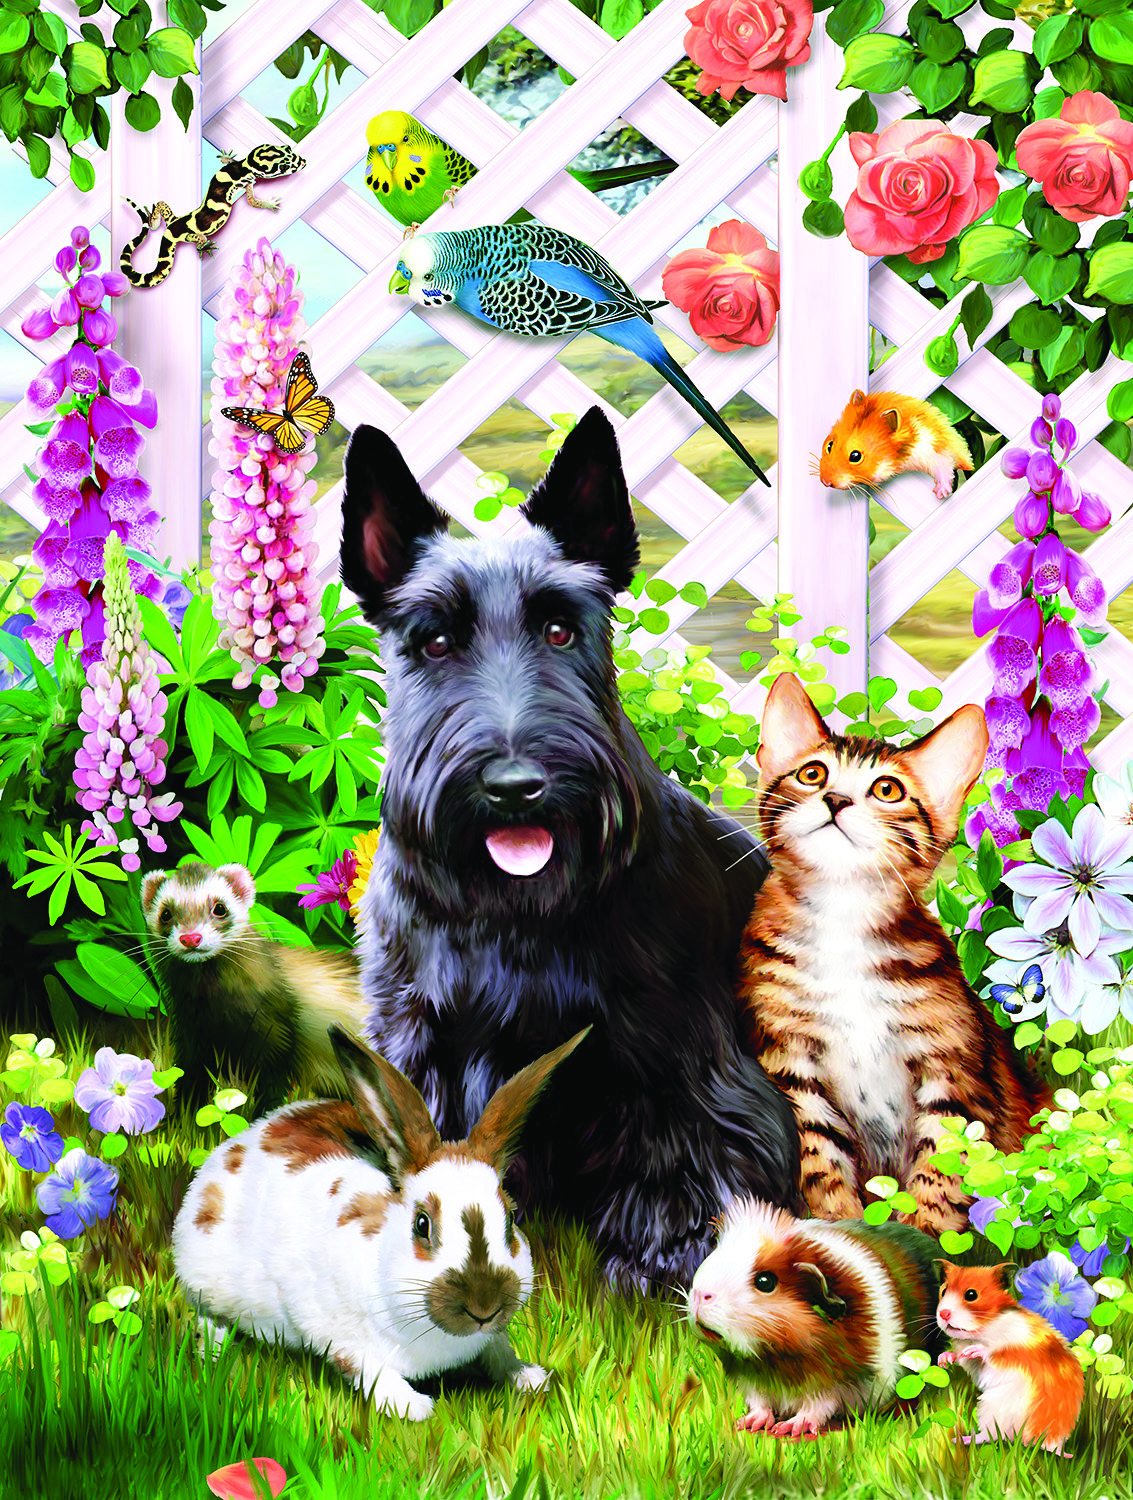 Garden Pals 500 pc Jigsaw Puzzle by SunsOut